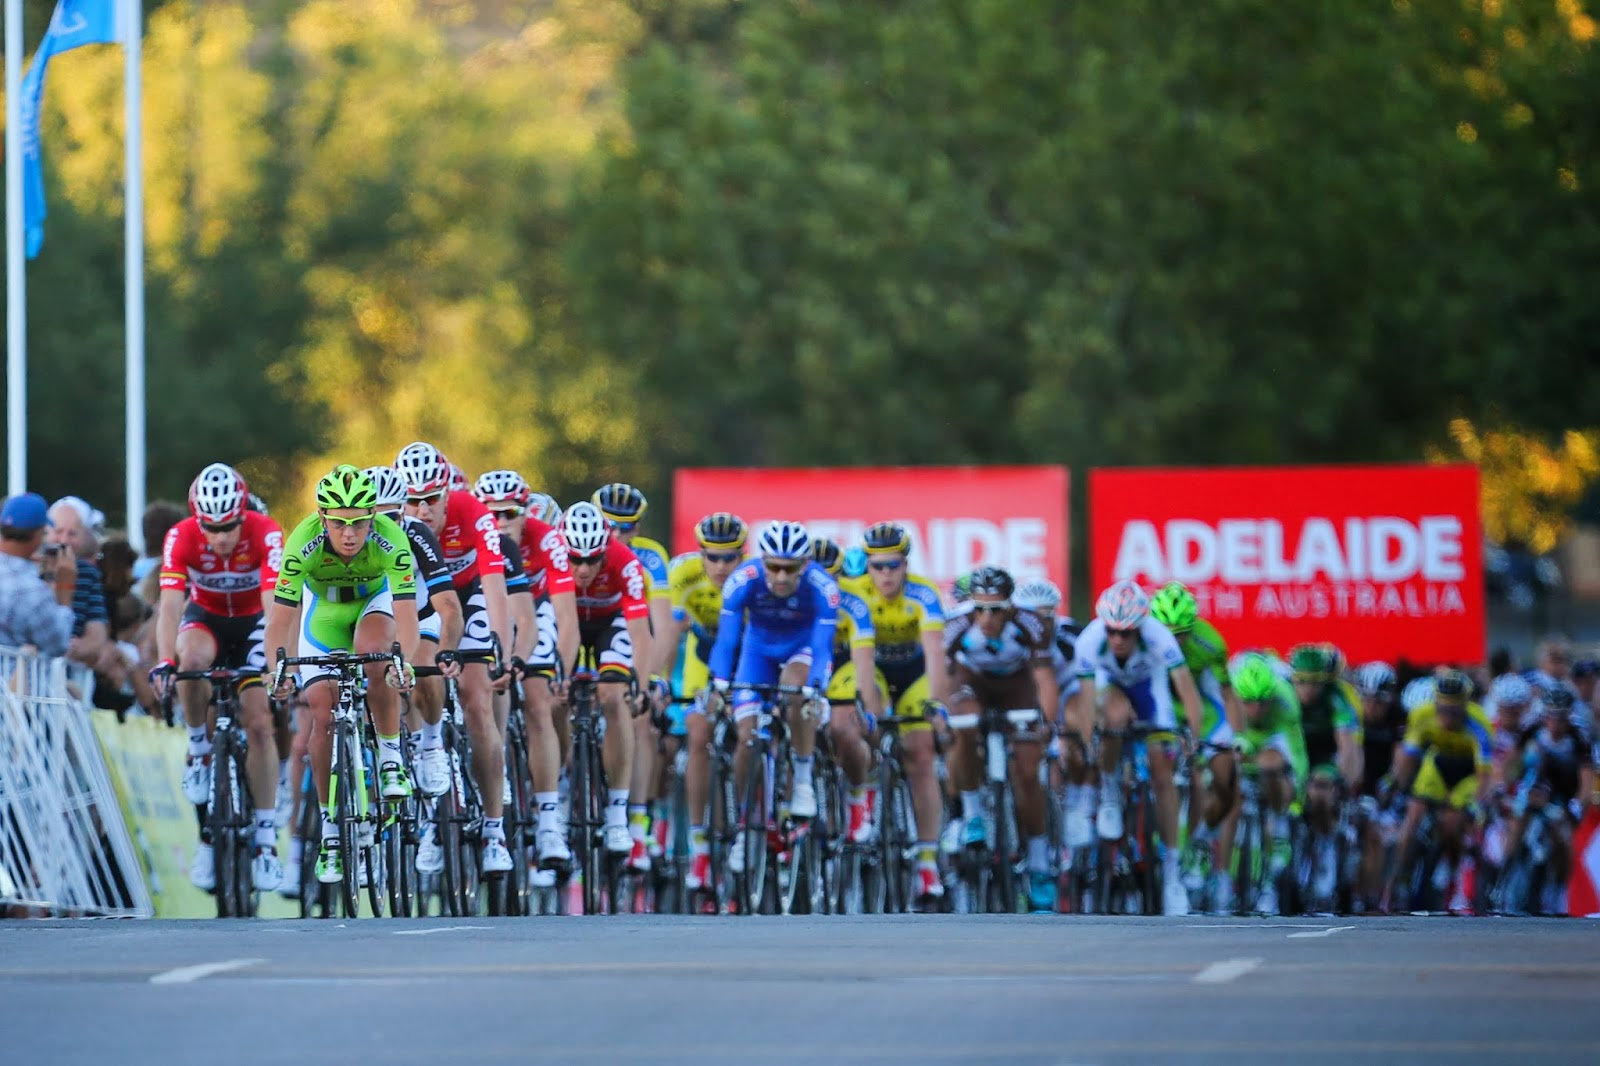 2014, Adelaide, Australia, Cadel Evans, Cycling, Down, Peloton, People's Choice, Race, Riders, Sky, Sports, Team, Tour, Under, 2014, Adelaide, Australia, Cadel Evans, Cycling, Down, Peloton, People's Choice, Race, Riders, Sky, Sports, Team, Tour, Under,